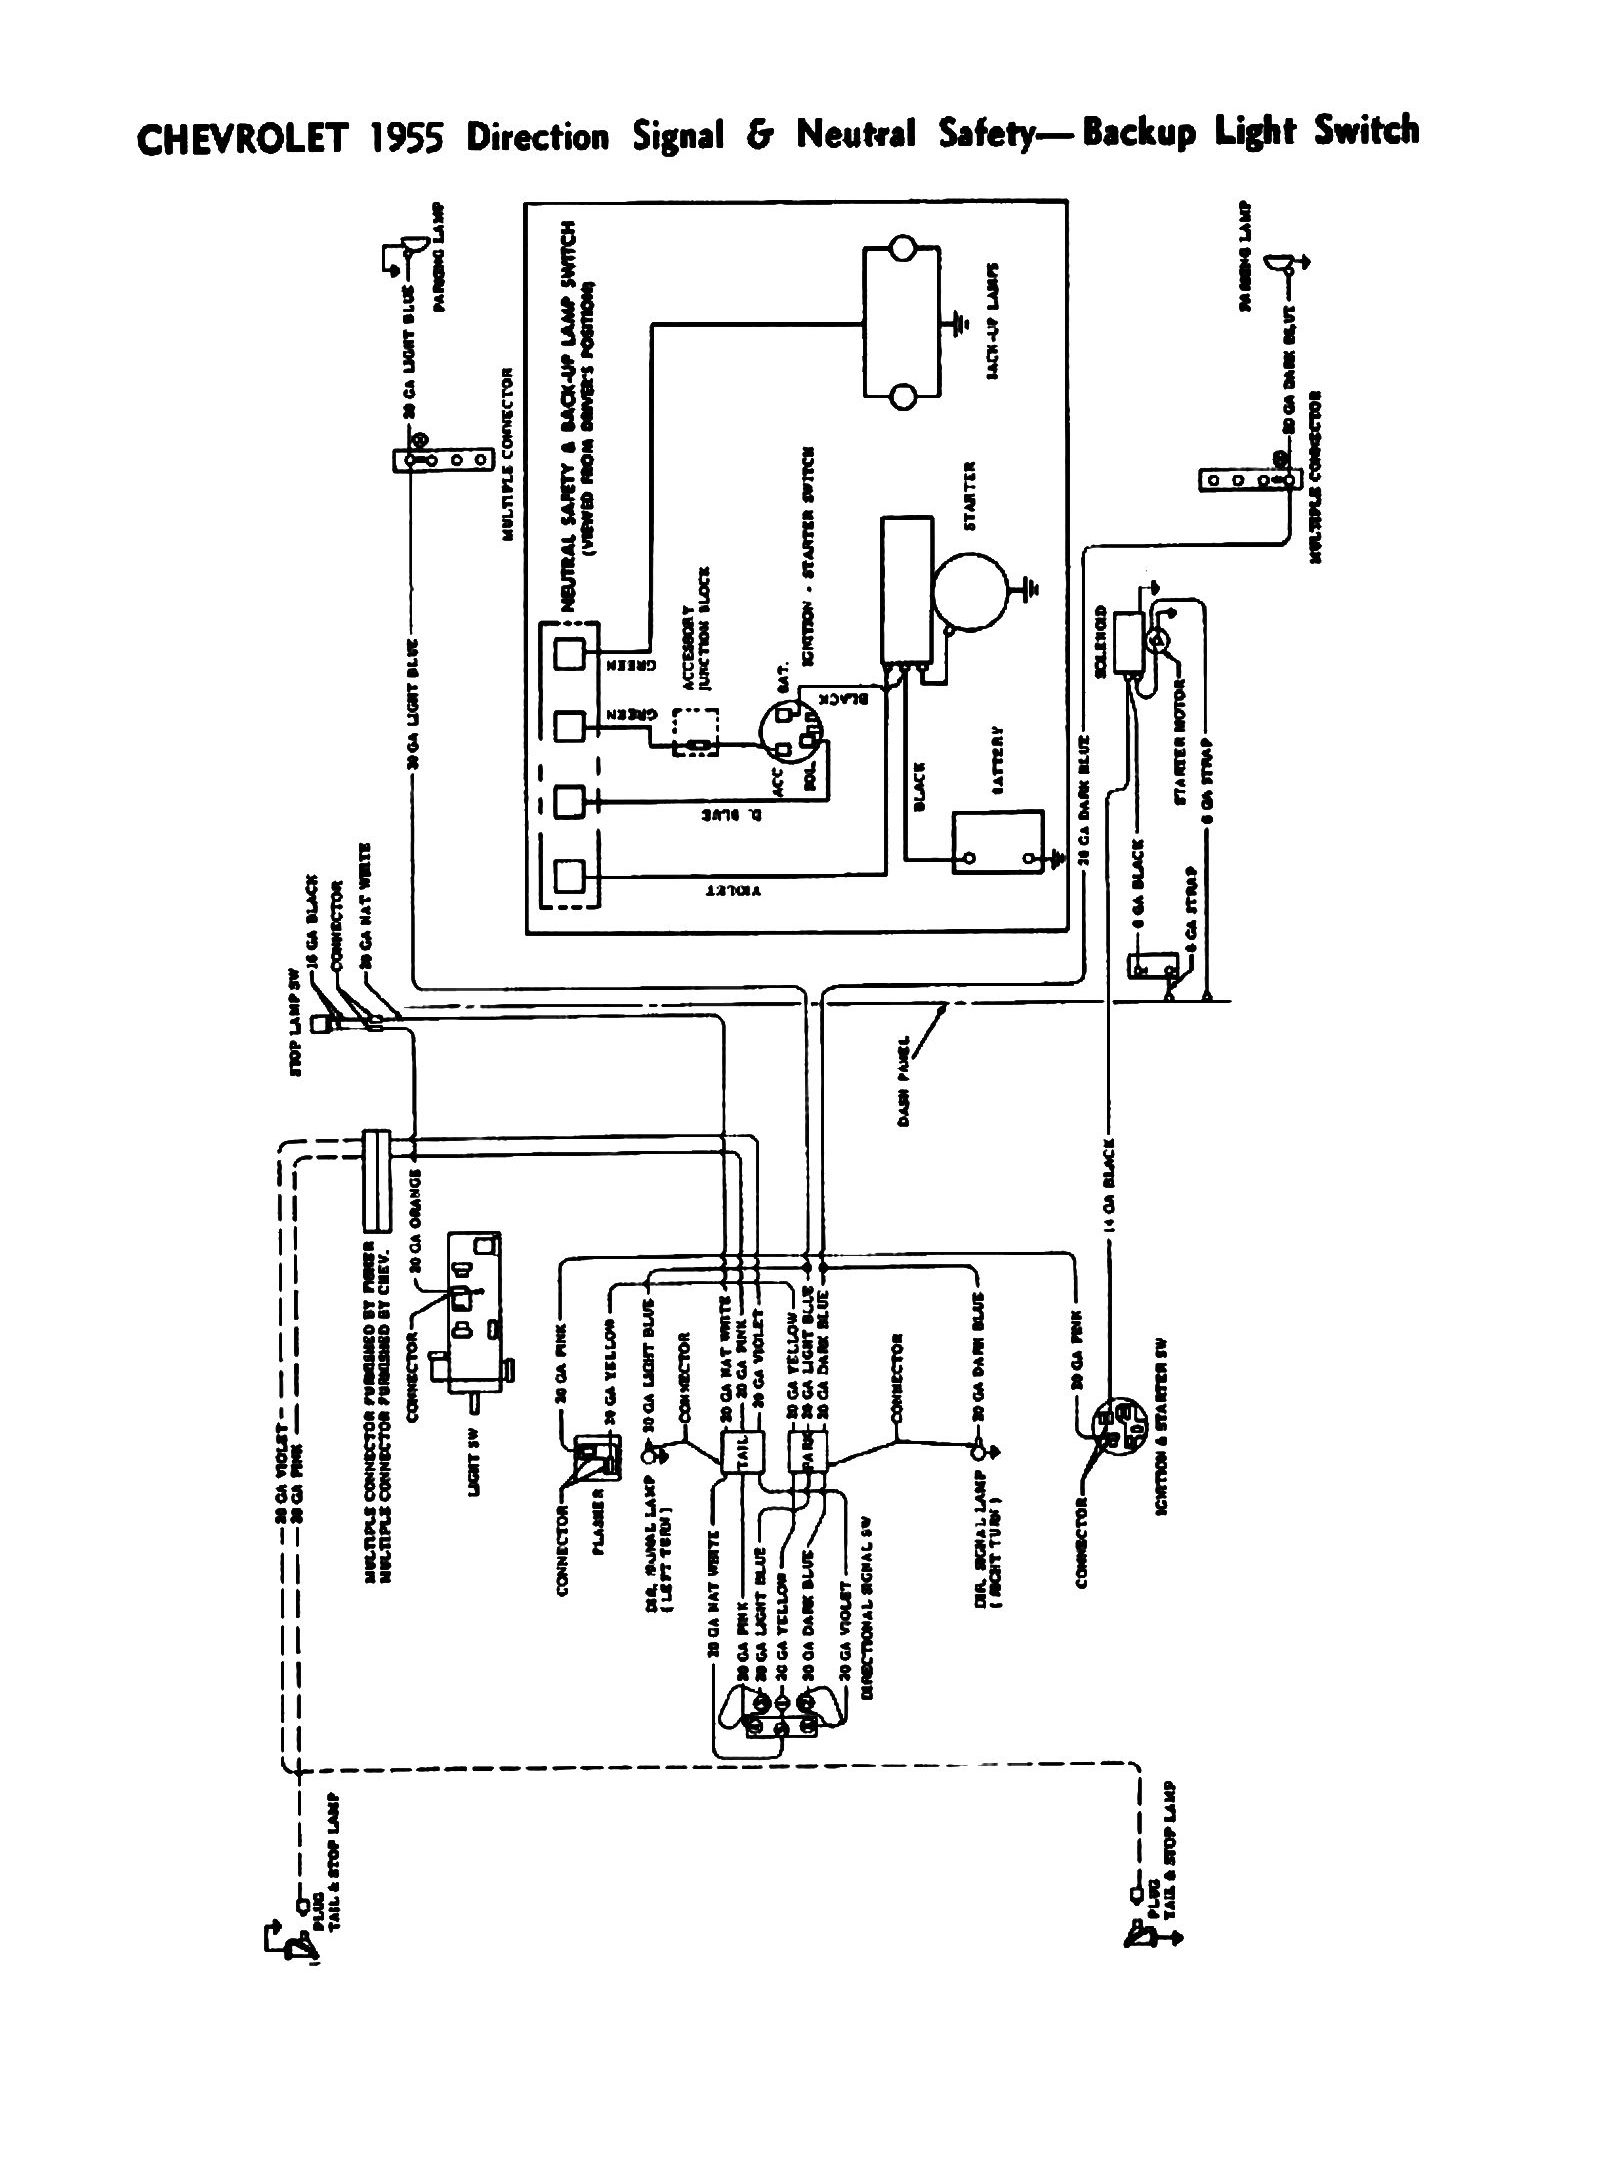 55 Chevy Turn Signal Wiring on generator plug wiring diagram